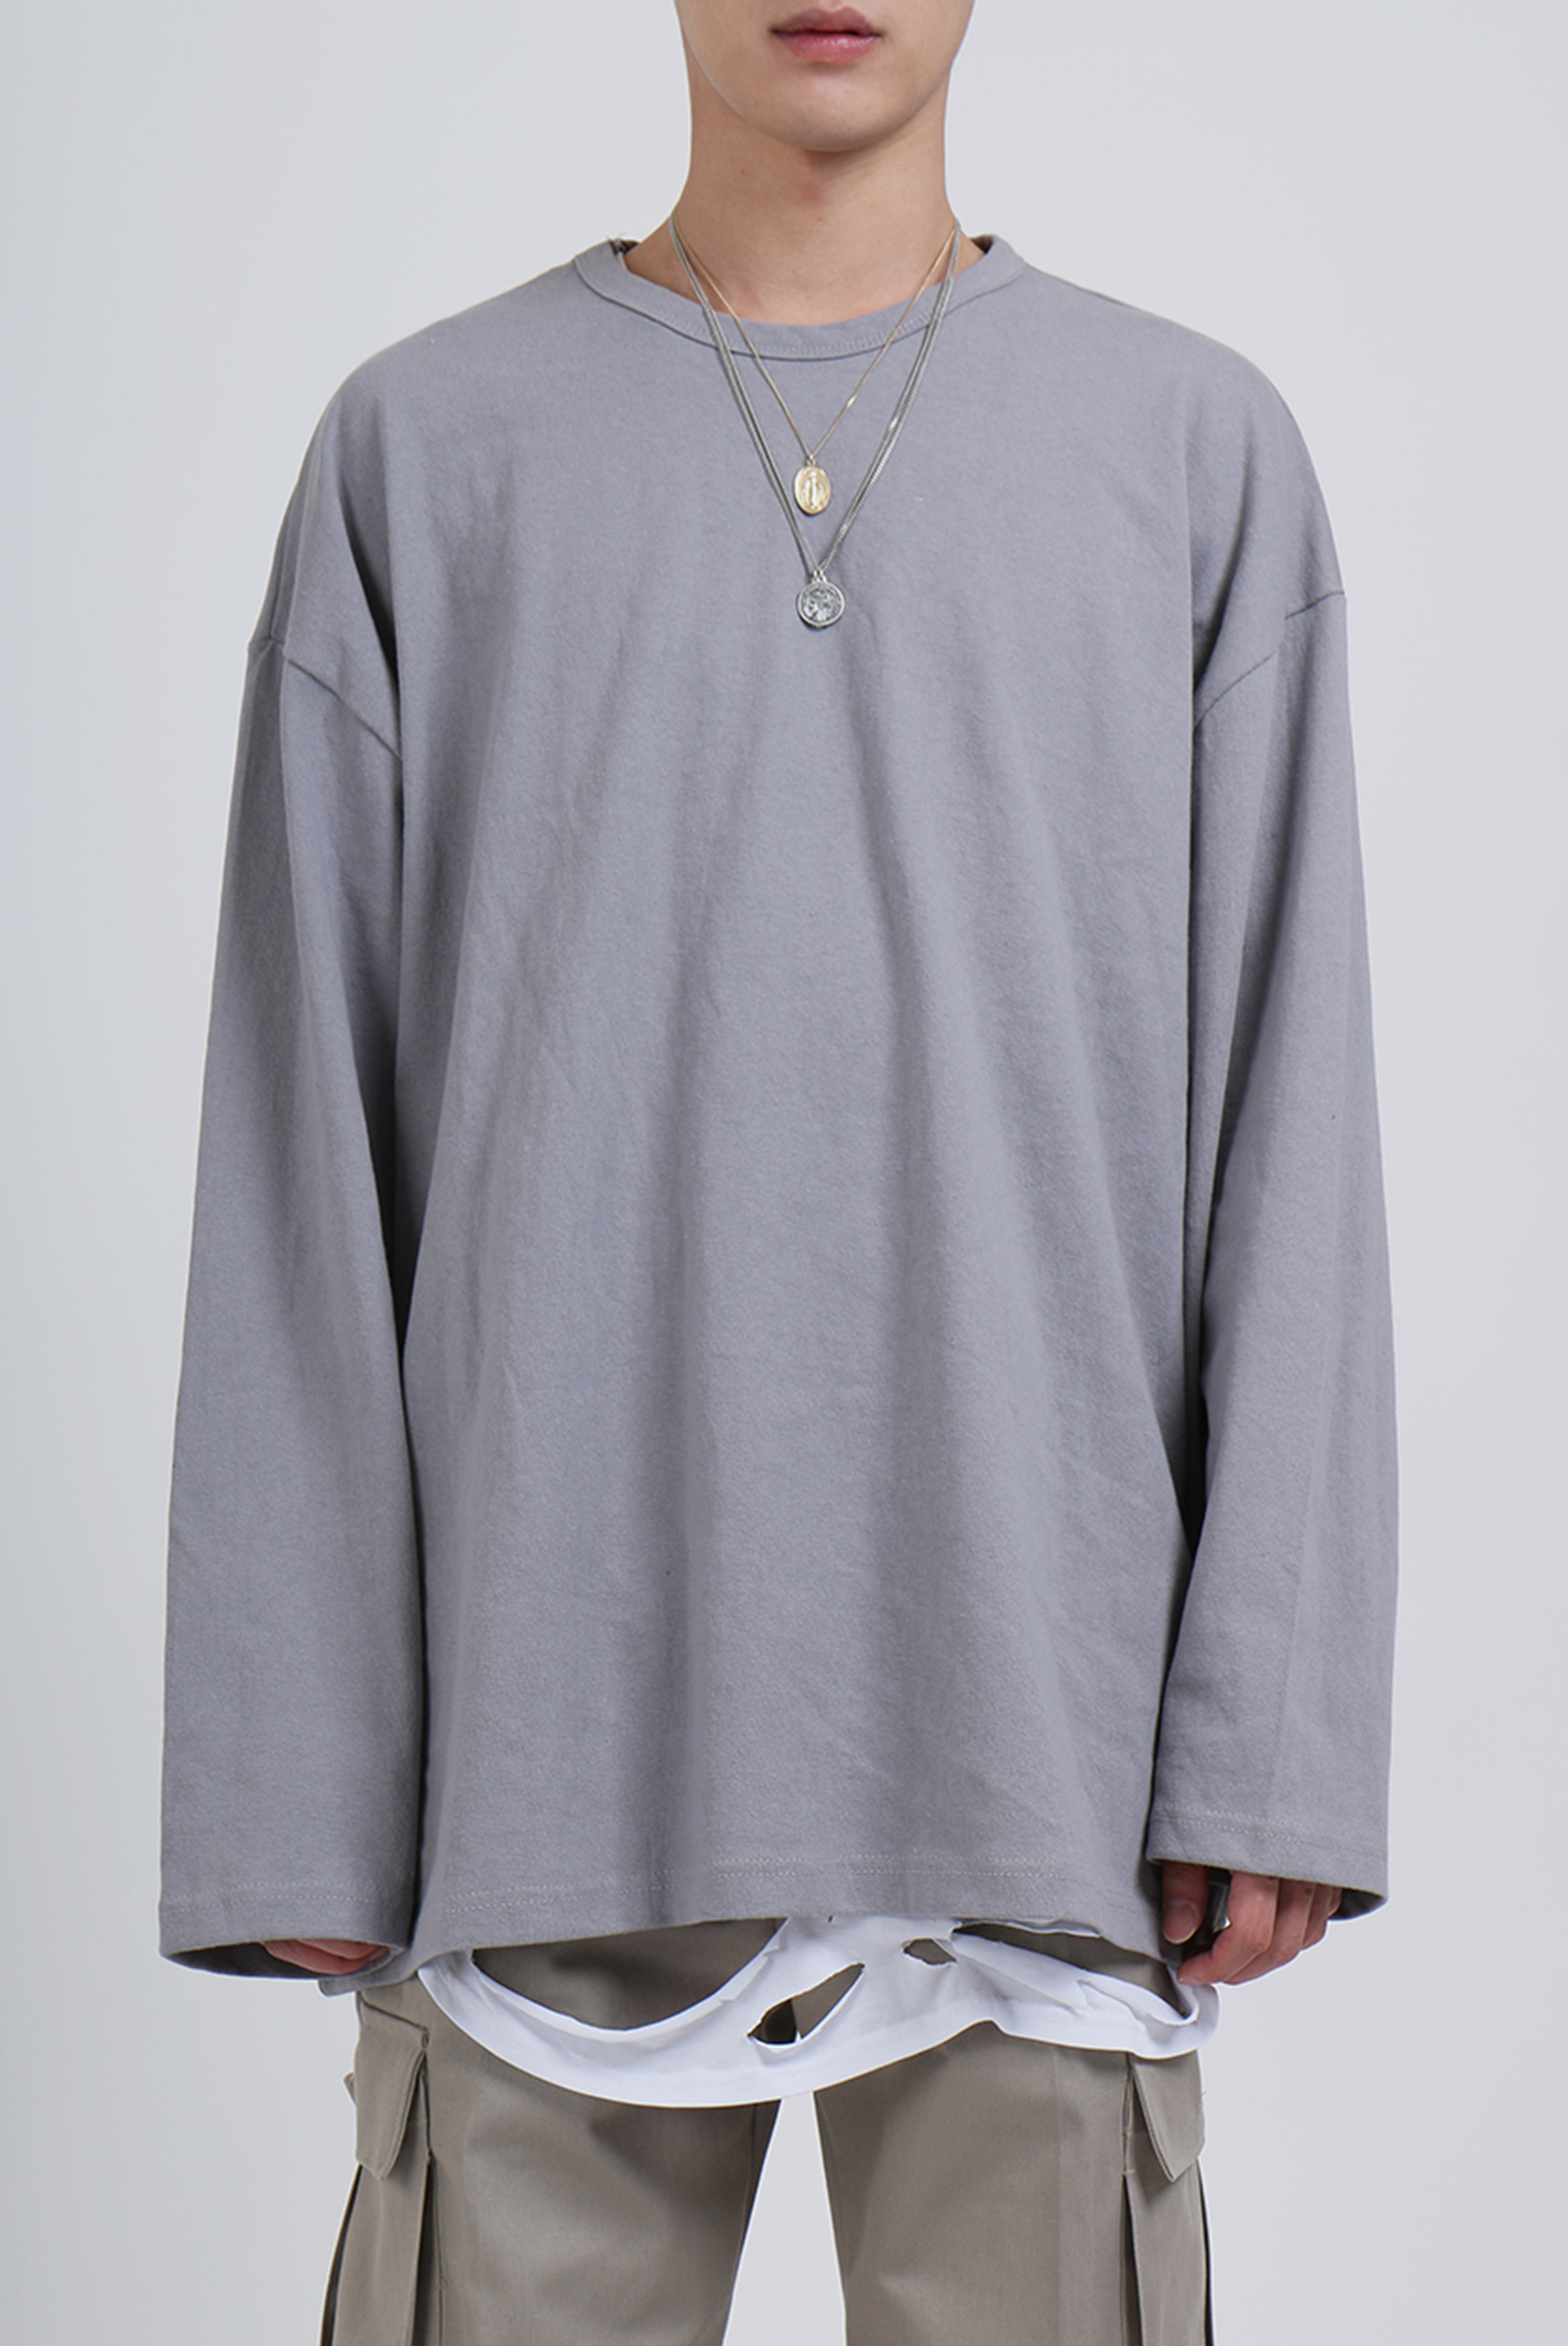 Over Long Sleeve T